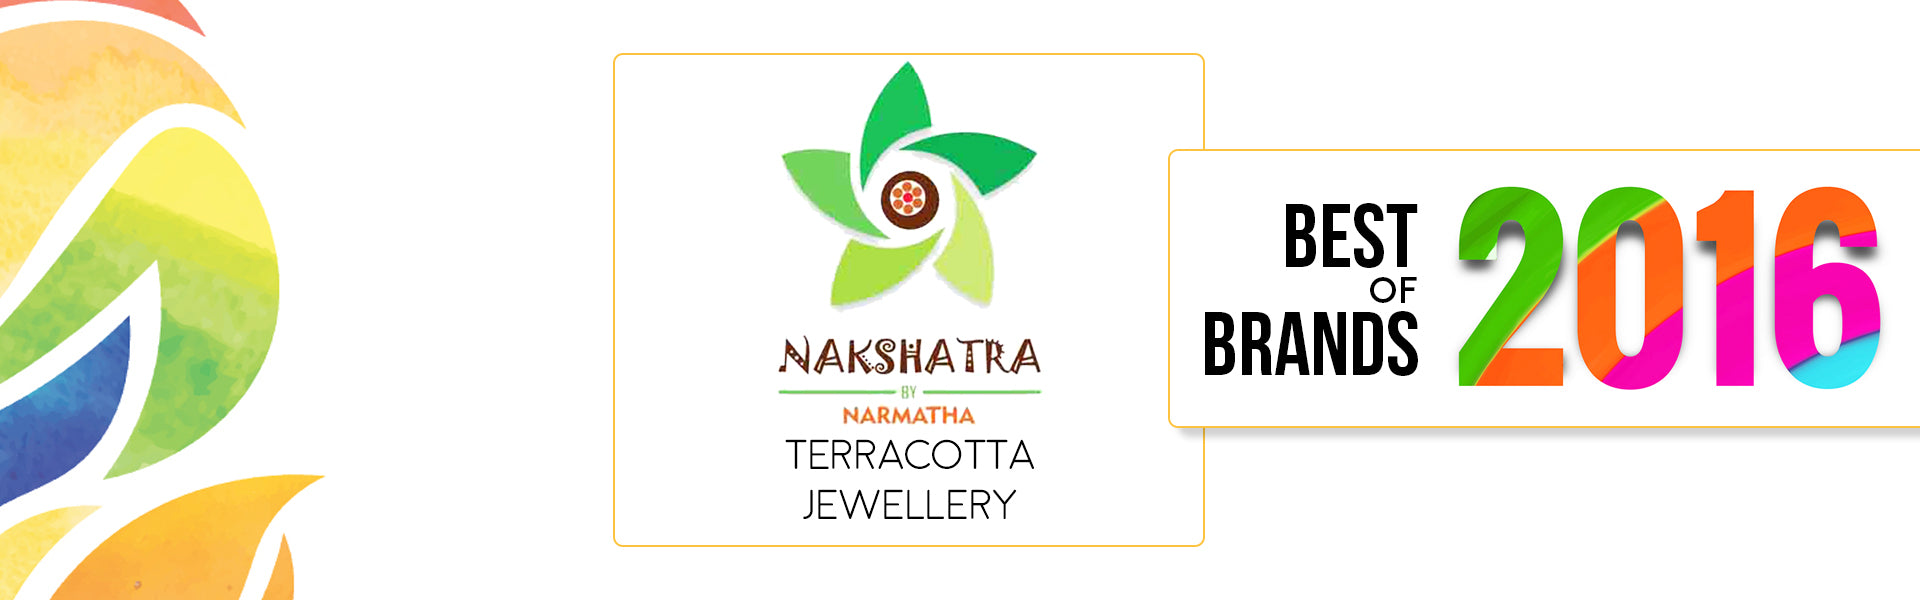 Best brand of 2016 | Nakshatra Terracotta Jewellery